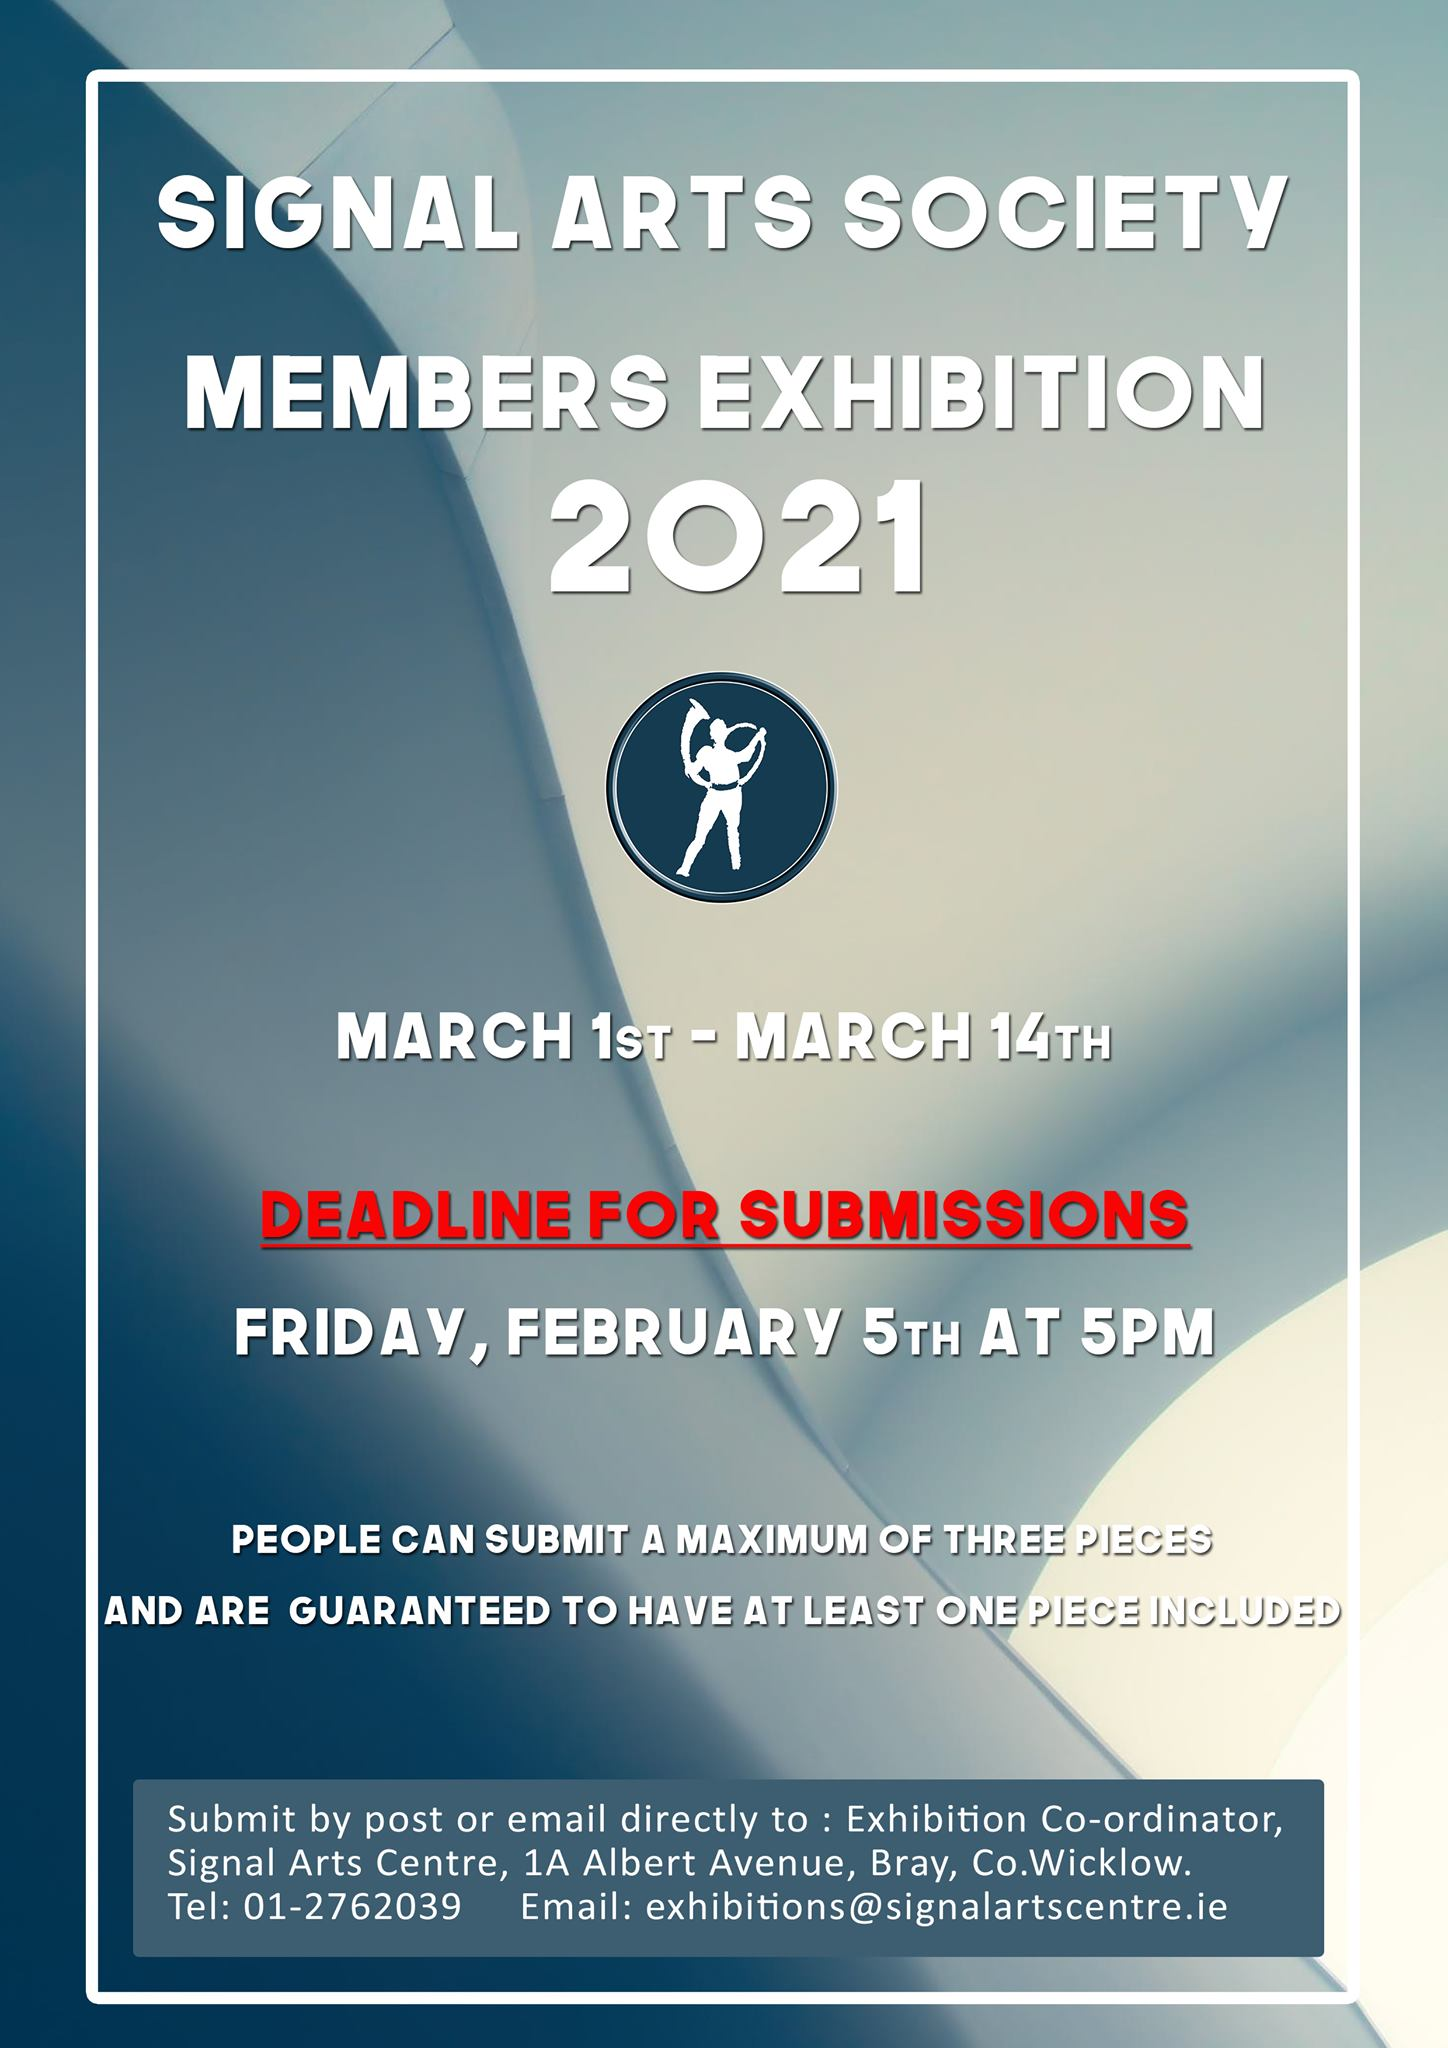 Signal Arts Society Members Exhibition Submissions